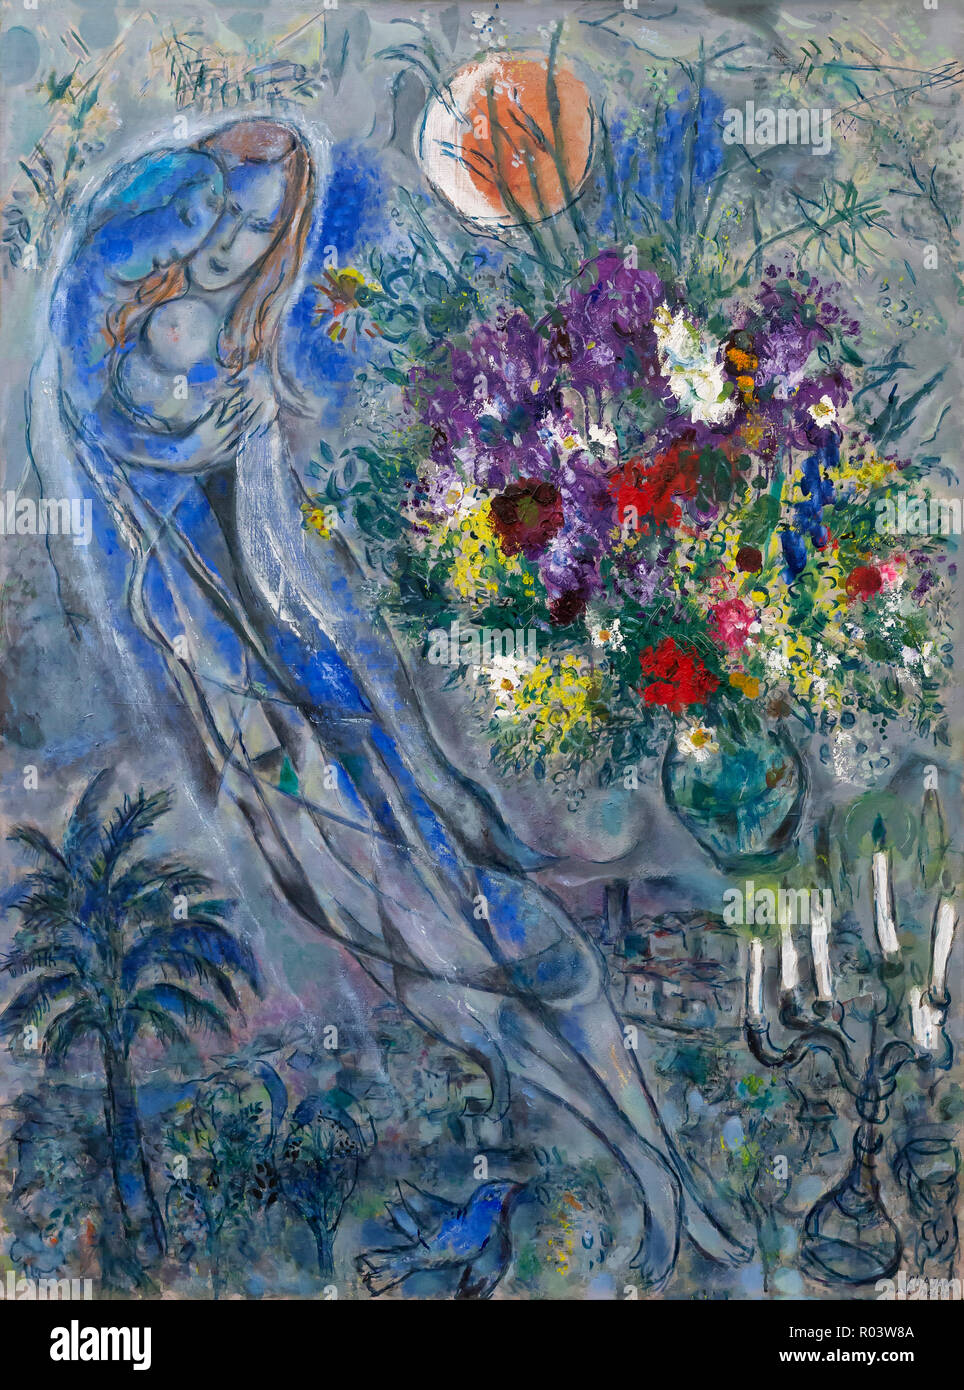 Lovers in Grey, Marc Chagall, 1956-1960, Zurich Kunsthaus, Zurich, Switzerland, Europe - Stock Image